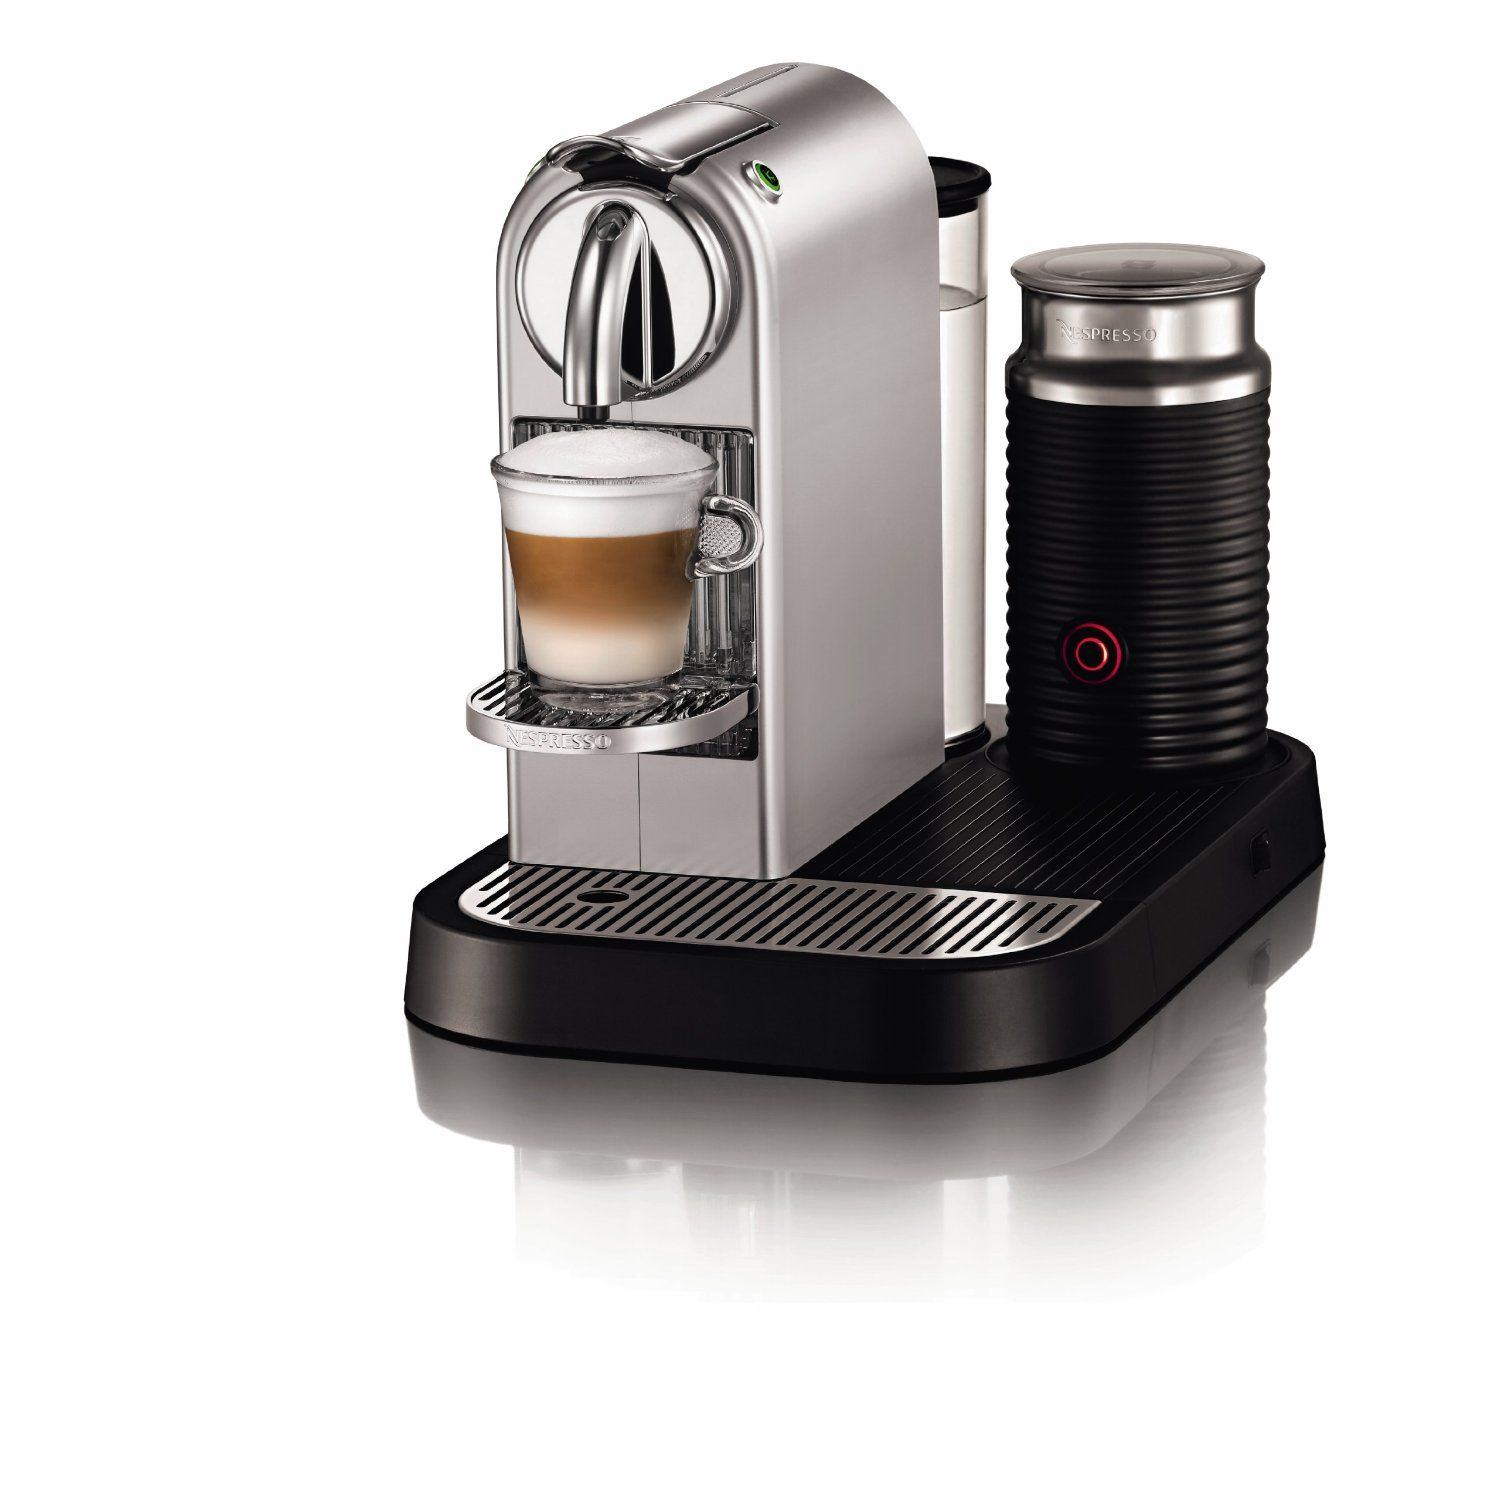 Great little 19bar espresso maker with frother for those